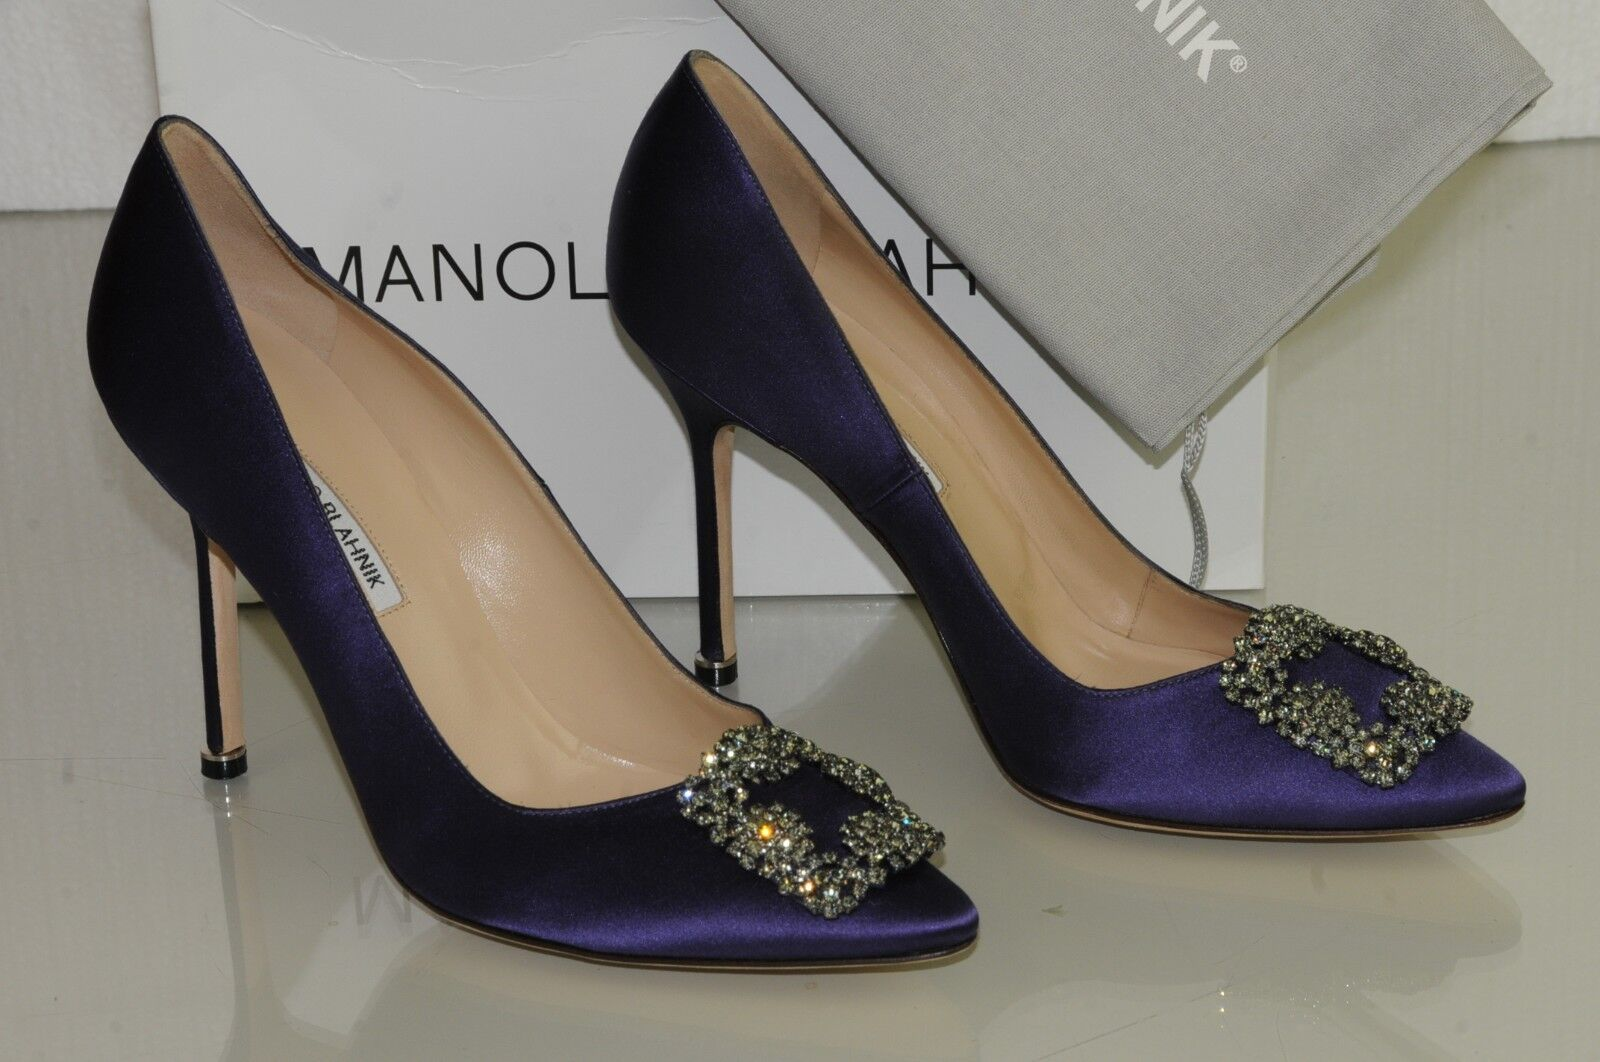 965 NEW MANOLO BLAHNIK HANGISI Plum Purple Satin JEWELED Pumps SHOES 40 40.5 41